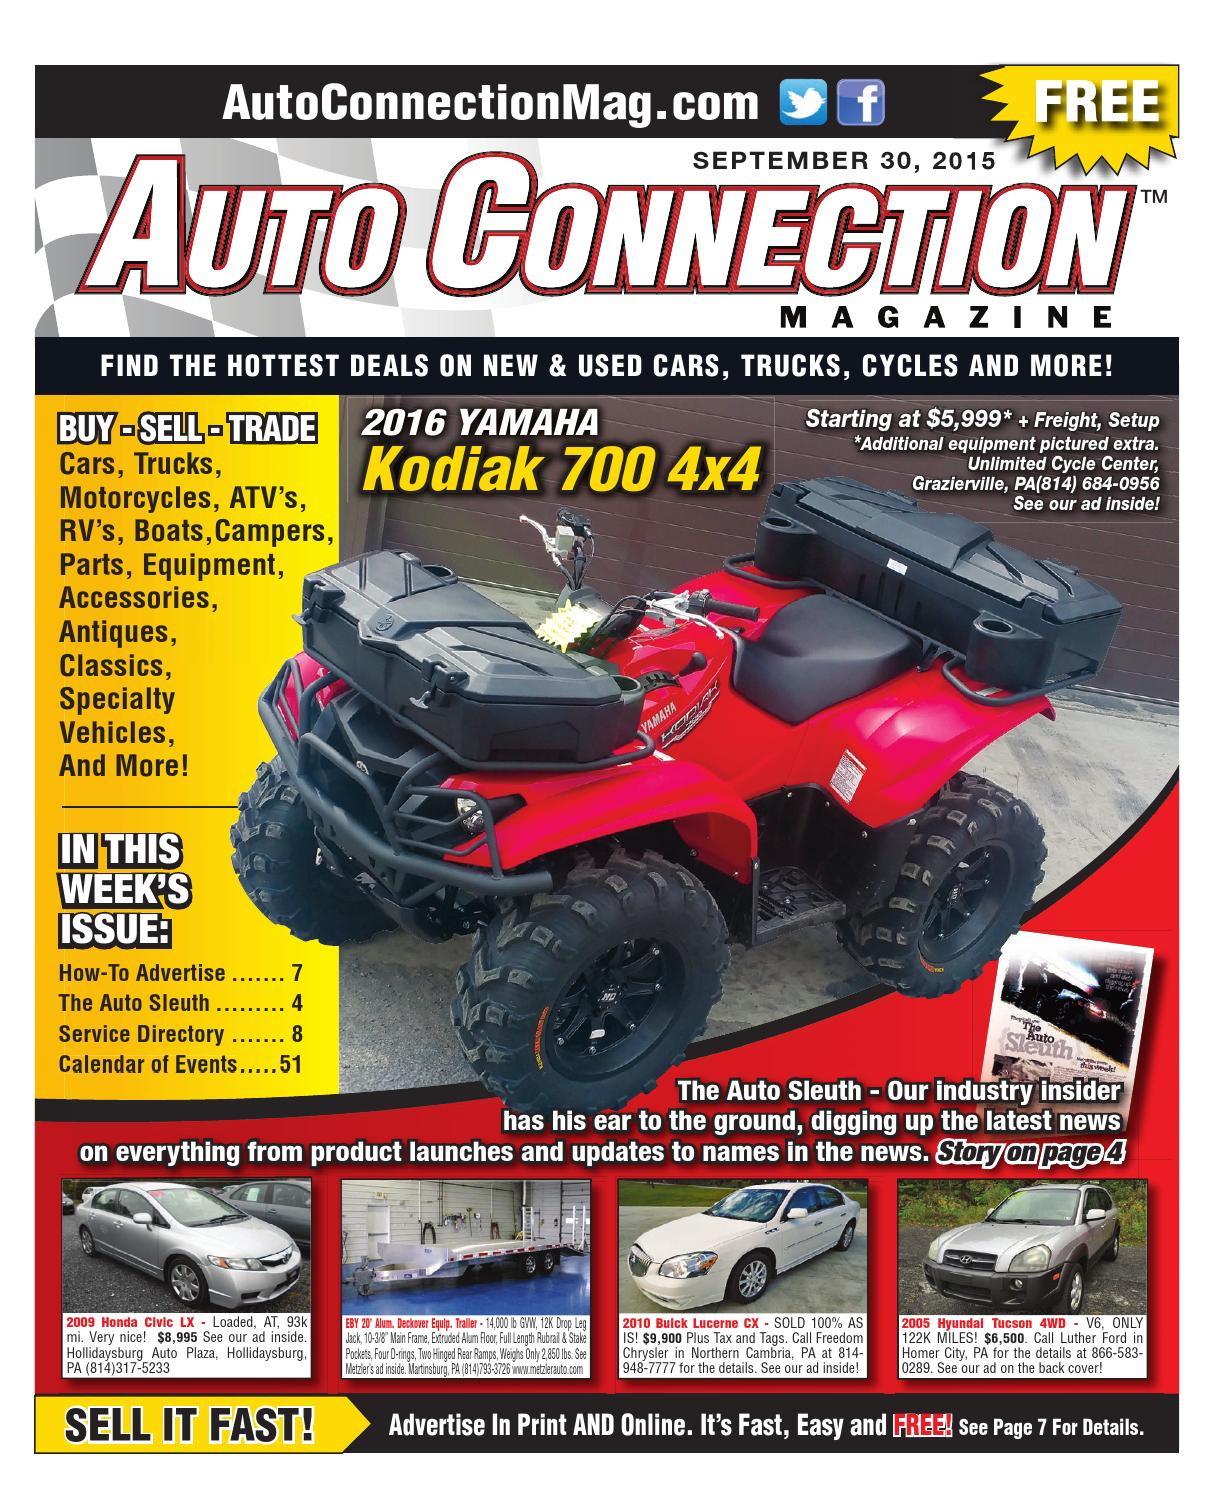 09 30 15 Auto Connection Magazine By Issuu 2009 Buell 1125cr Wiring Diagram